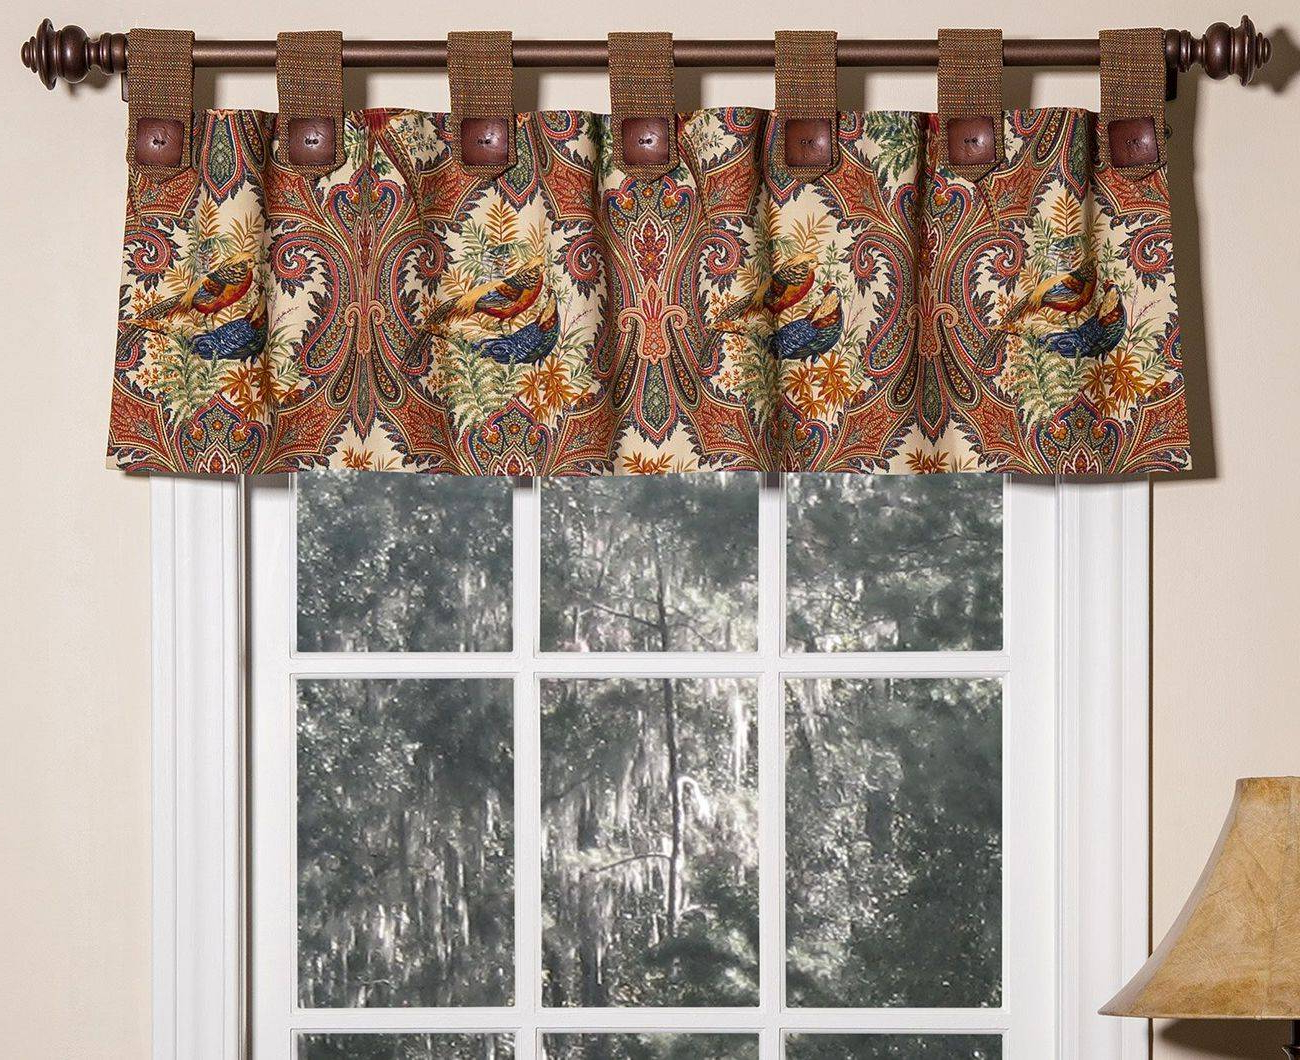 Check Scalloped Swag Sets With Regard To 2020 White Cotton Valance Curtains Valances Swags Window Toppers (View 20 of 20)